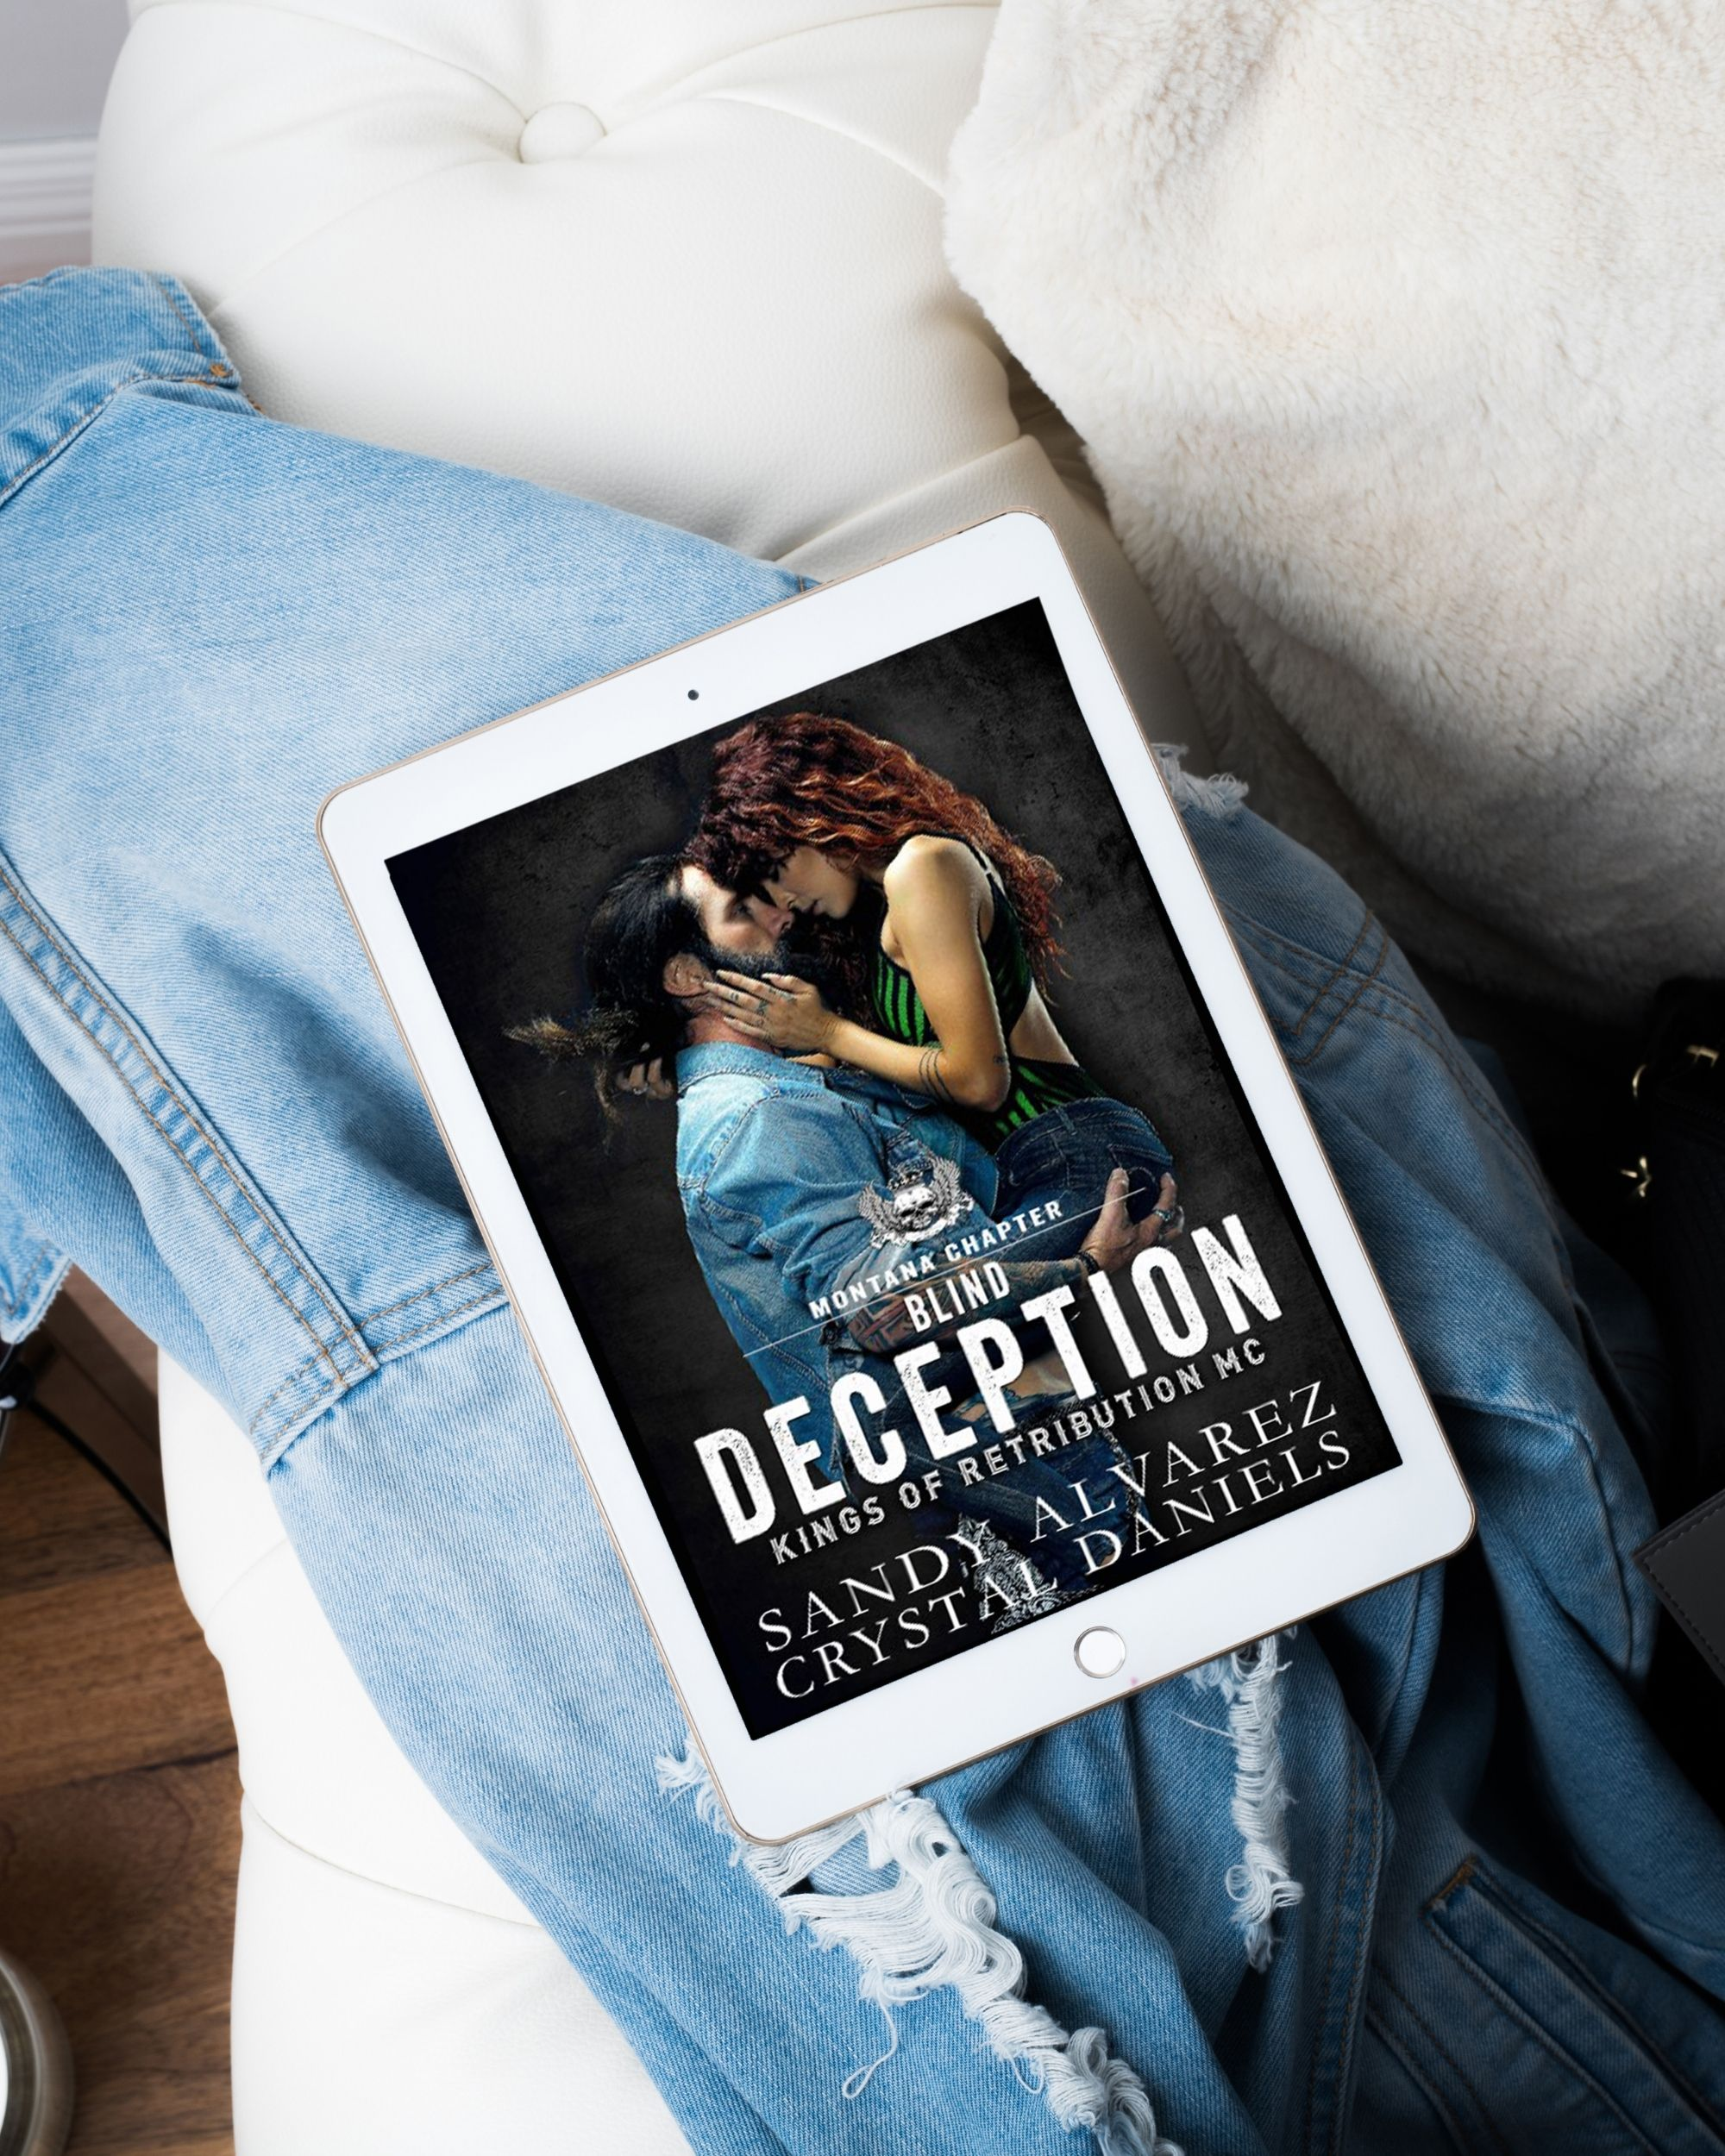 Blind Deception by Sandy Alvarez & Crystal Daniels | Book Review